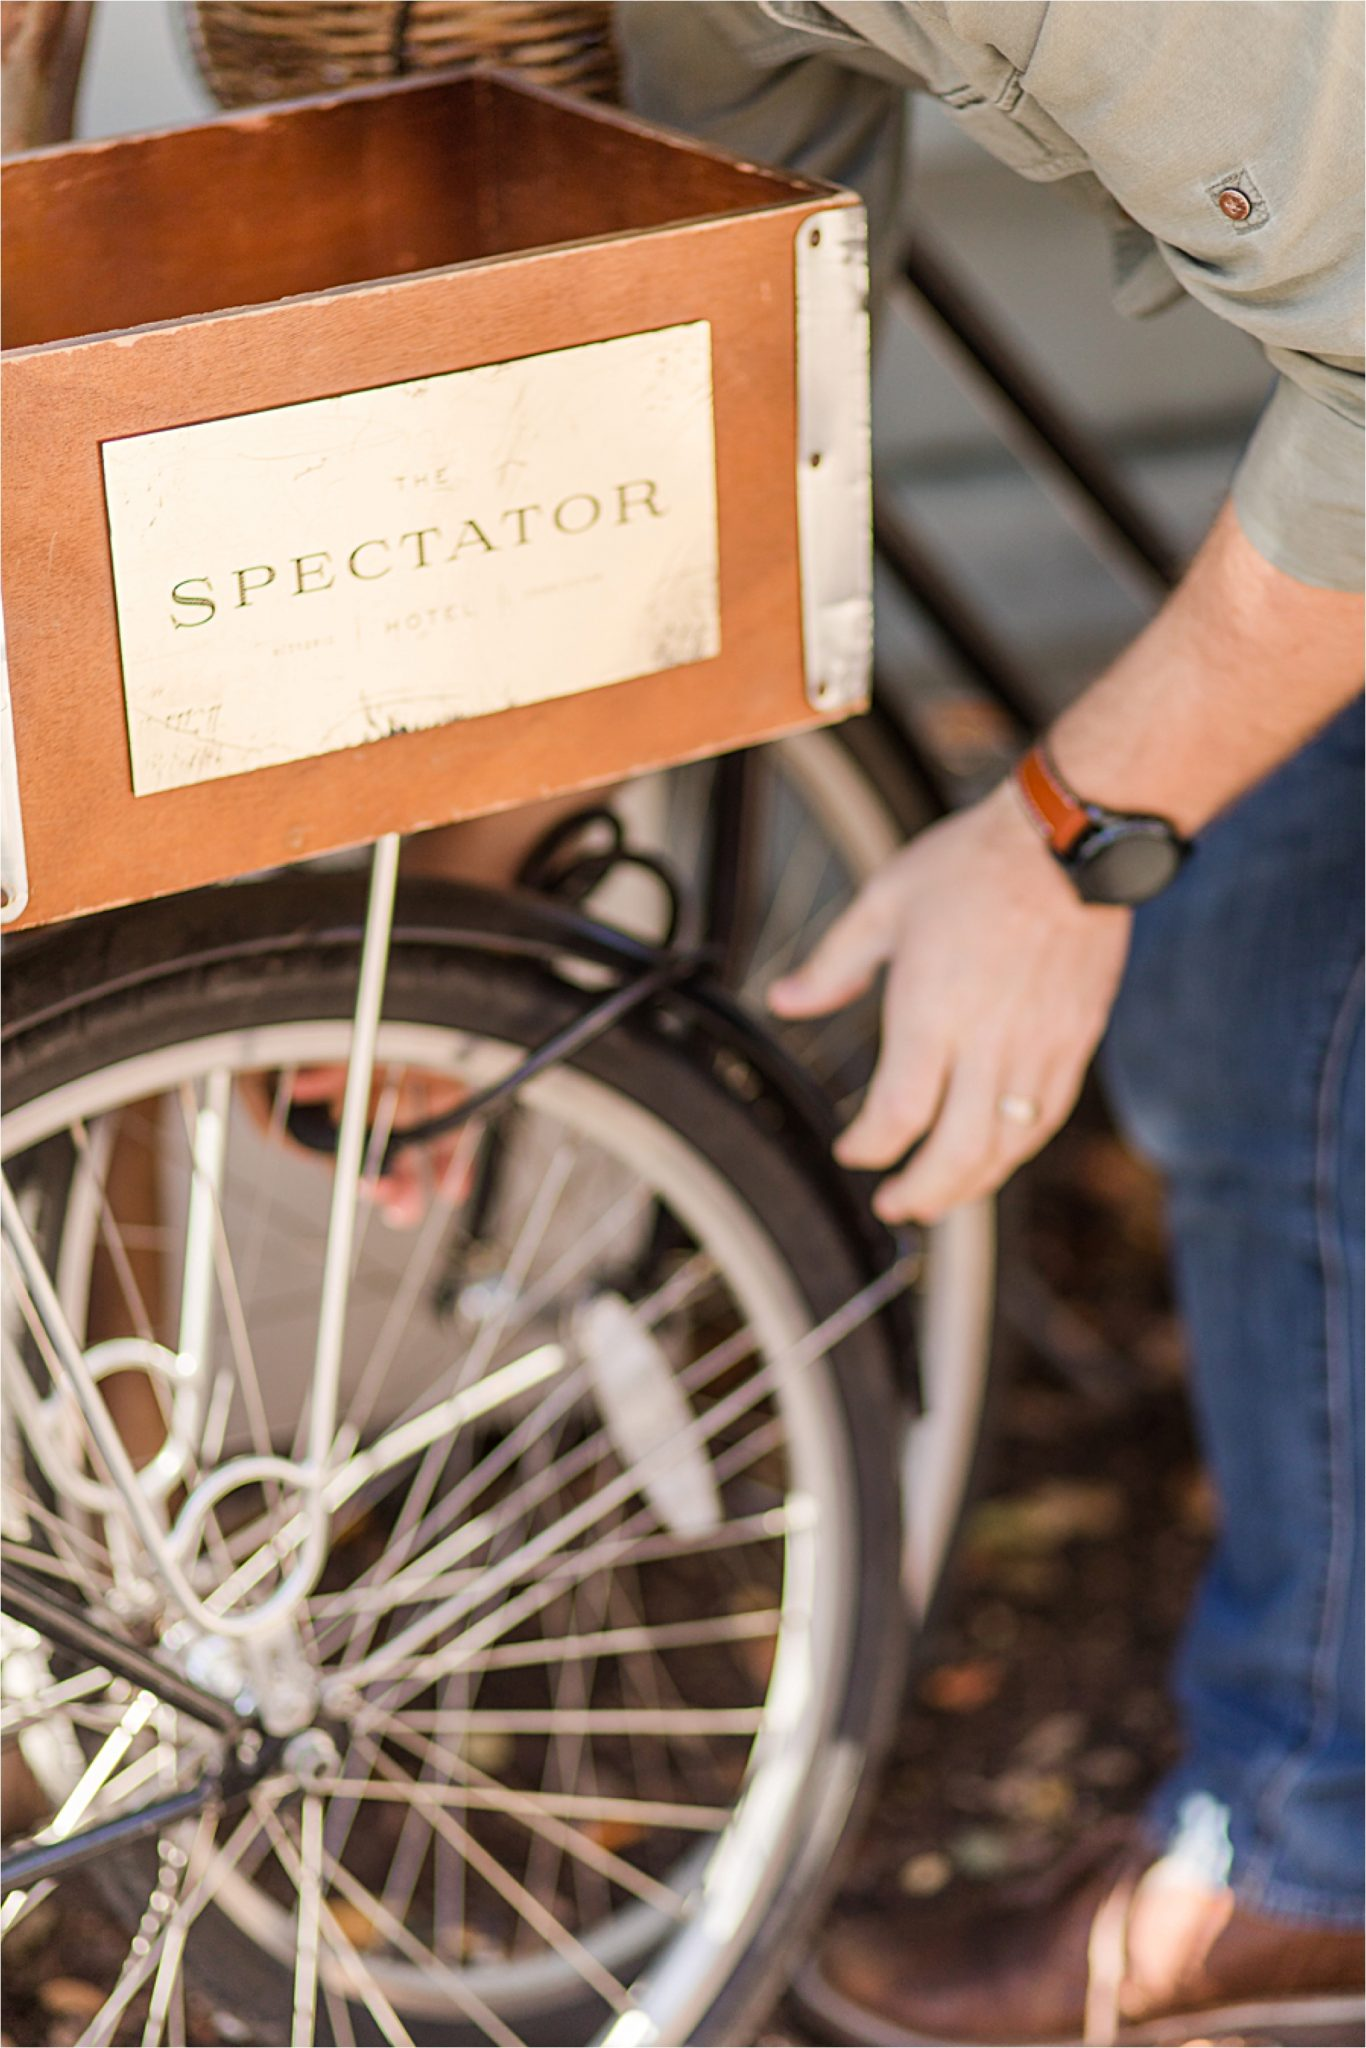 The Spectator Hotel-bicycling- Honeymoon destination to Charleston, South Carolina-Best Honeymoon Locations in the USA-On a budget-where to honeymoon in Charleston